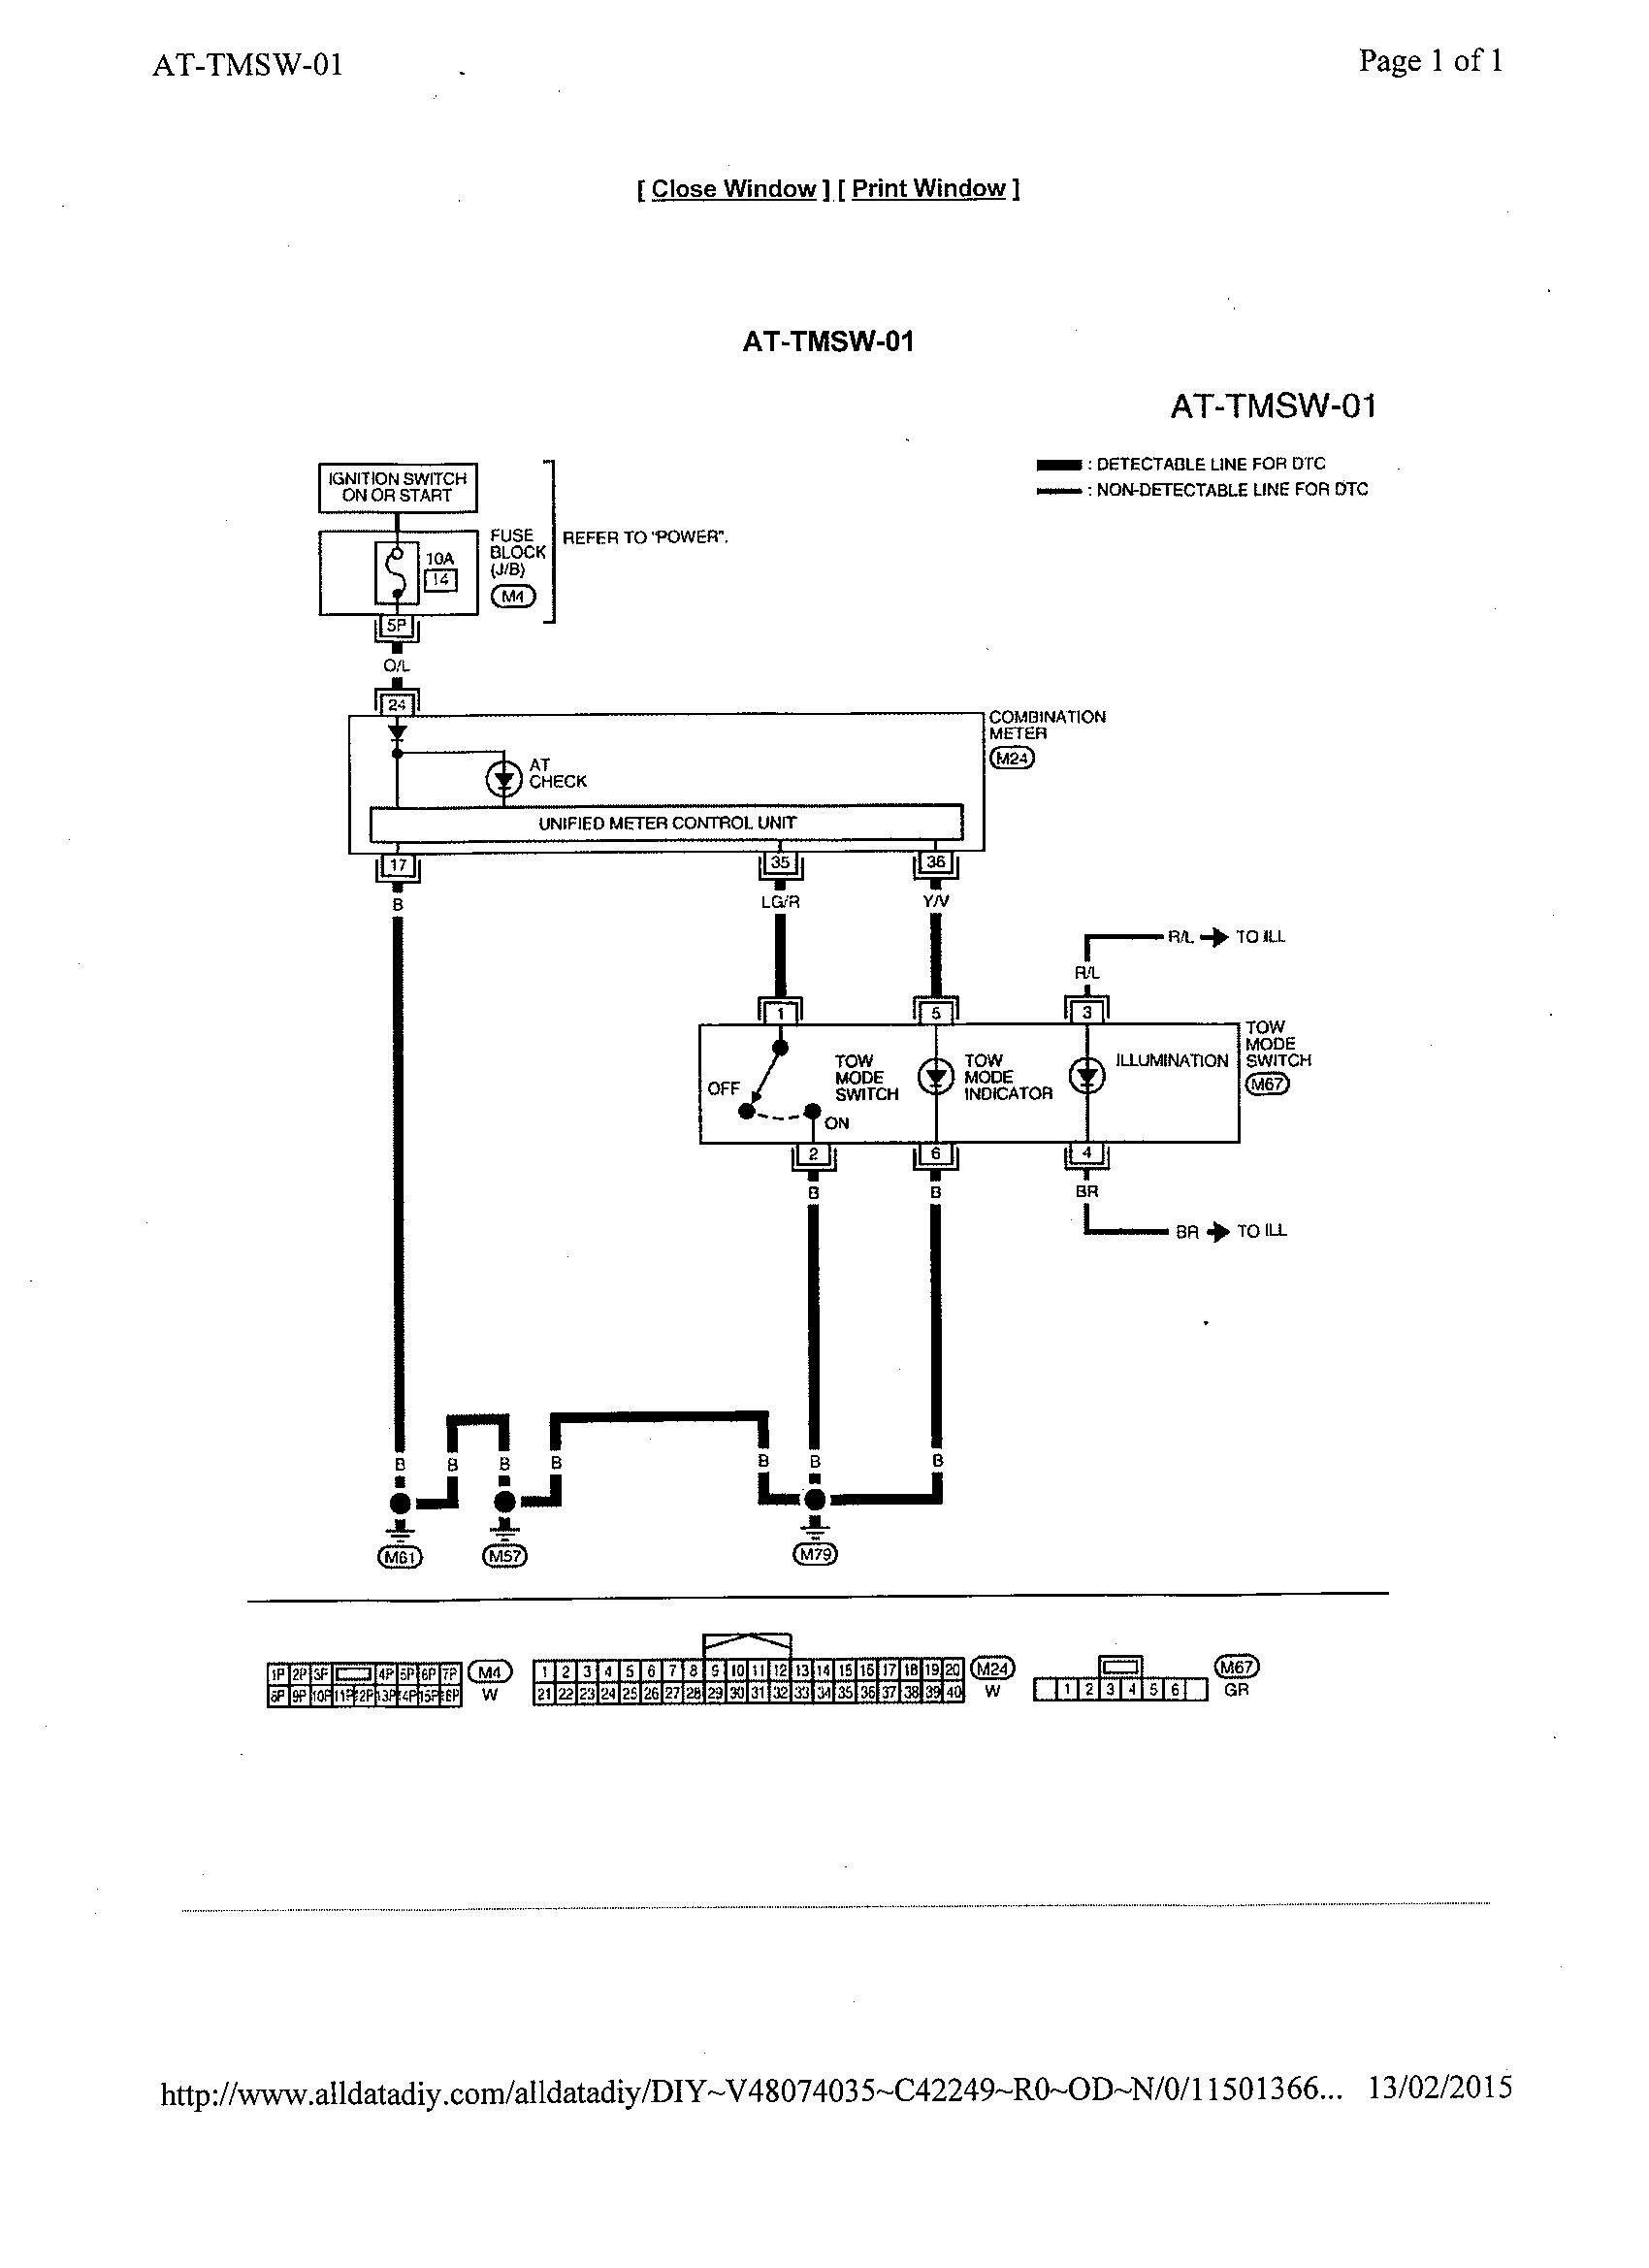 wiring diagram for toggle switch wiring image 6 pin toggle switch wiring diagram 6 auto wiring diagram schematic on wiring diagram for toggle